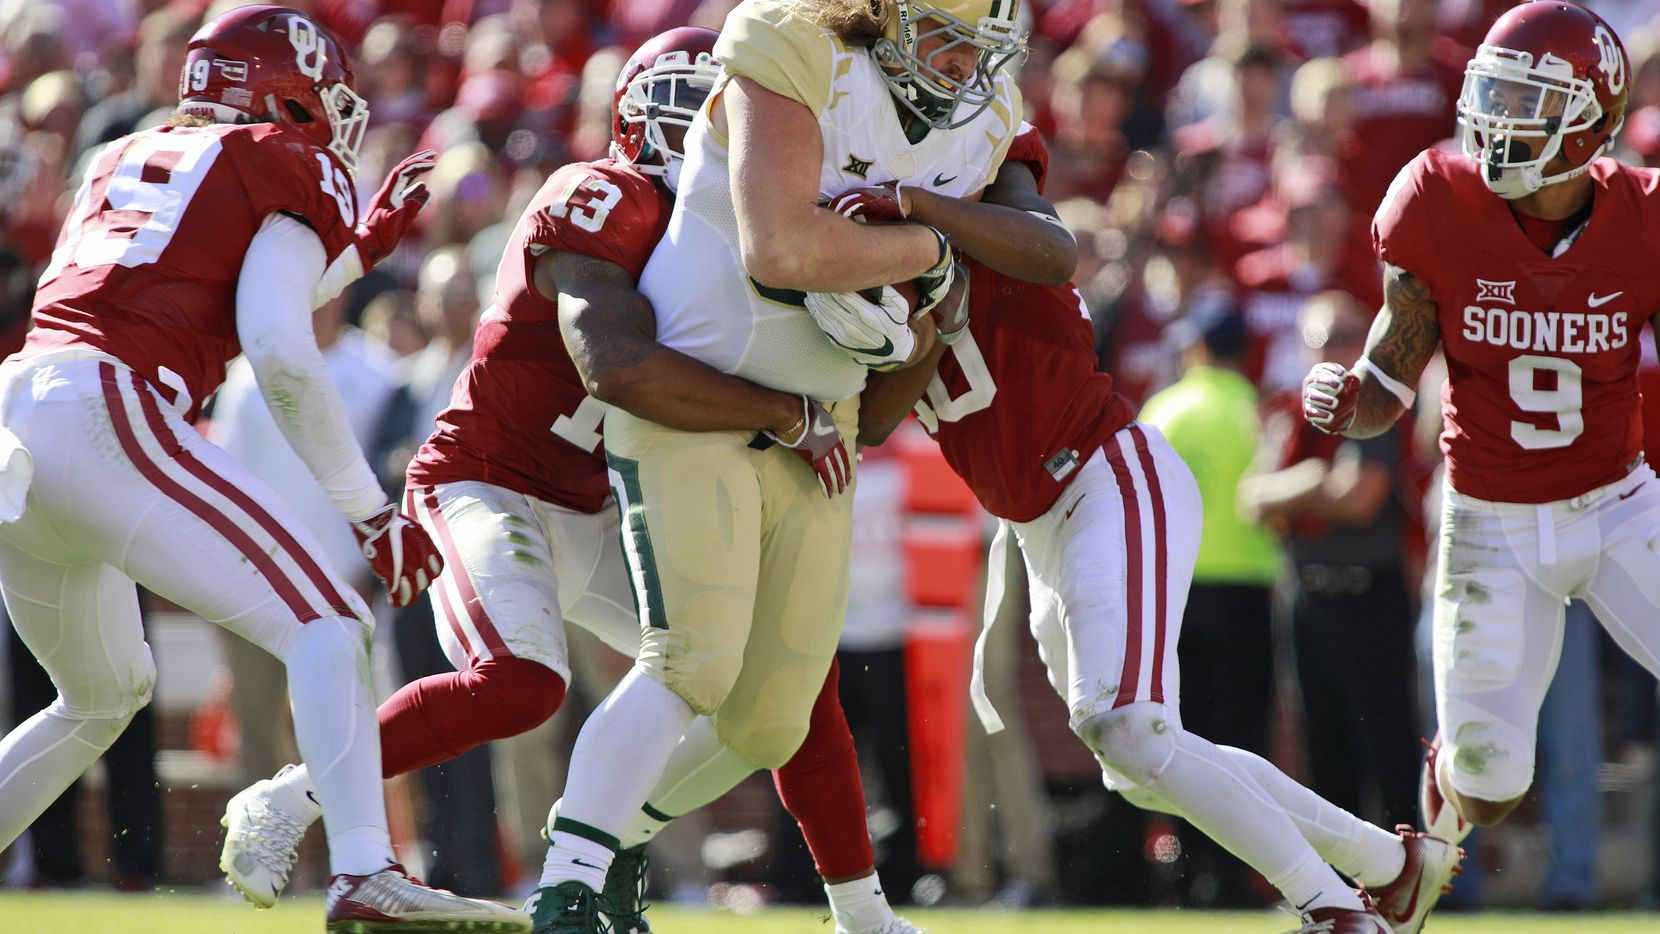 NORMAN, OK - NOVEMBER 12:  The Oklahoma Sooners defense tries to take down tight end Sam Tecklenburg #88 of the Baylor Bears November 12, 2016 at Gaylord Family-Oklahoma Memorial Stadium in Norman, Oklahoma. Oklahoma defeated Baylor 45-24. (Photo by Brett Deering/Getty Images)